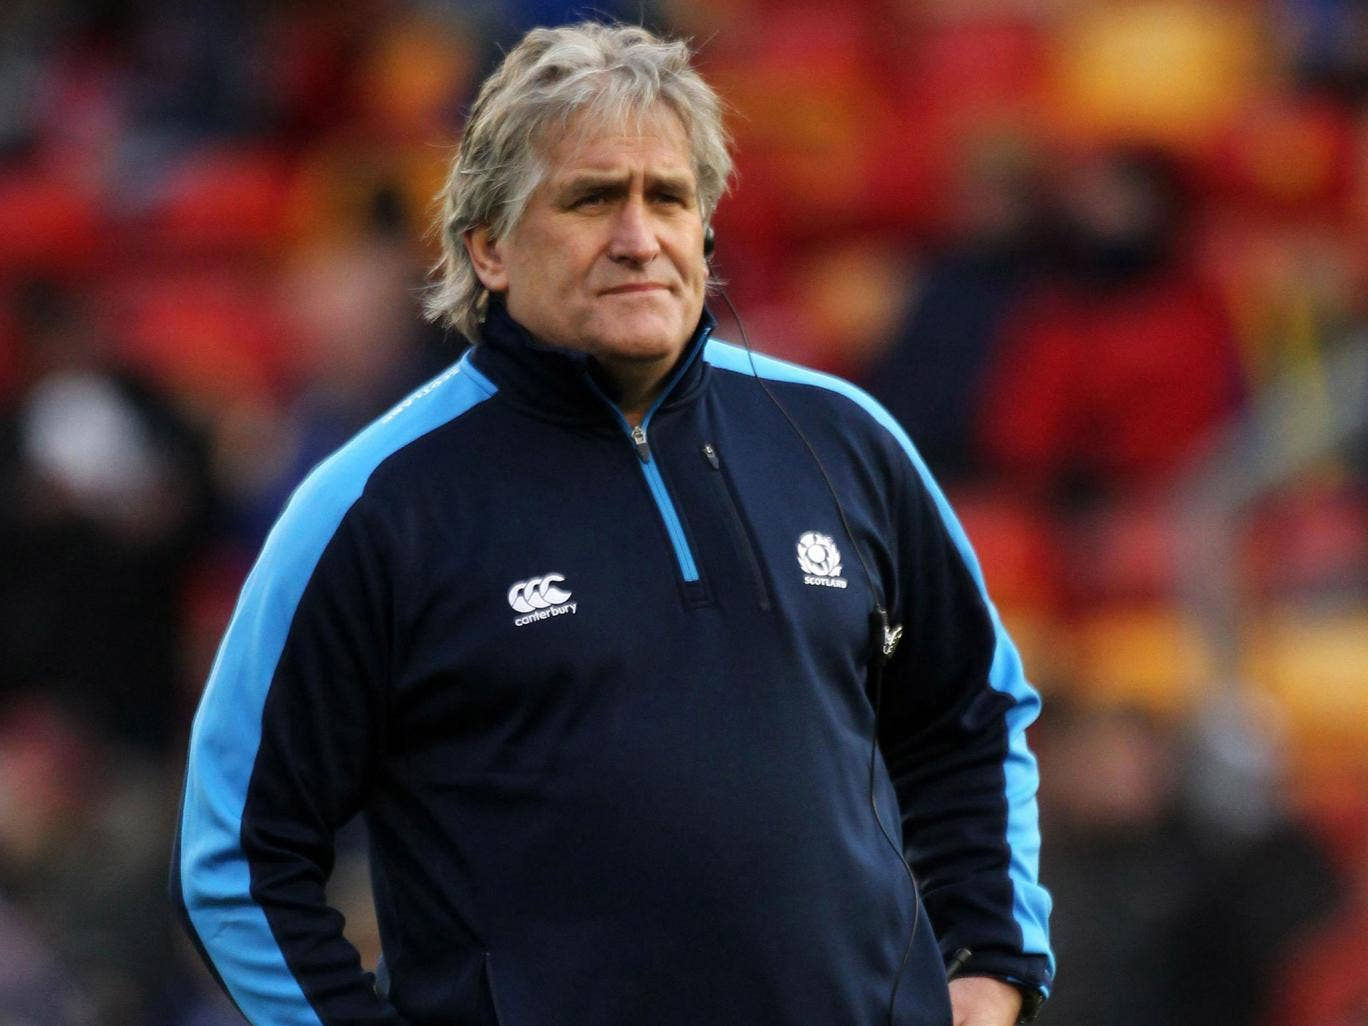 Scott Johnson failed to win a match when in charge of Wales in 2006